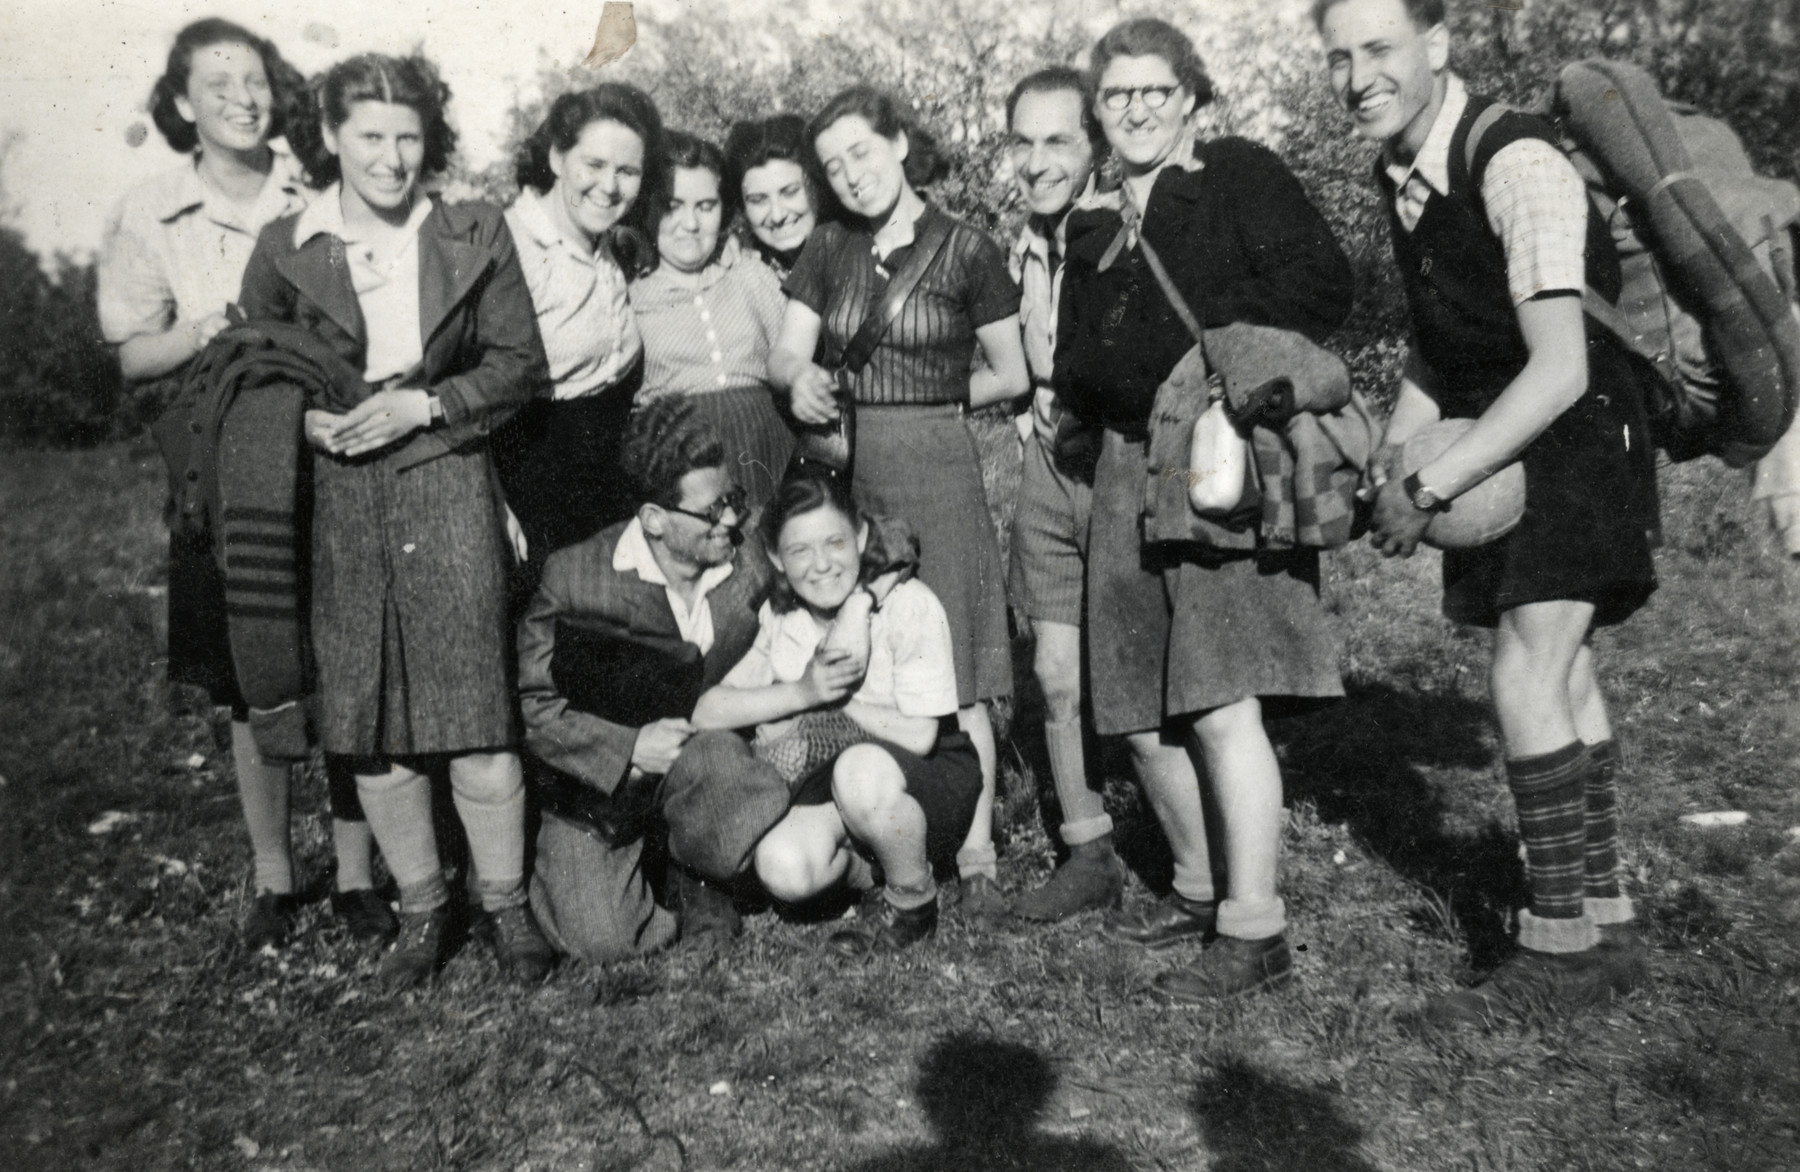 Zionist youth gather at a Shomer Hatzair summer camp in Budapest.  Esther Schaechter is second from the left.